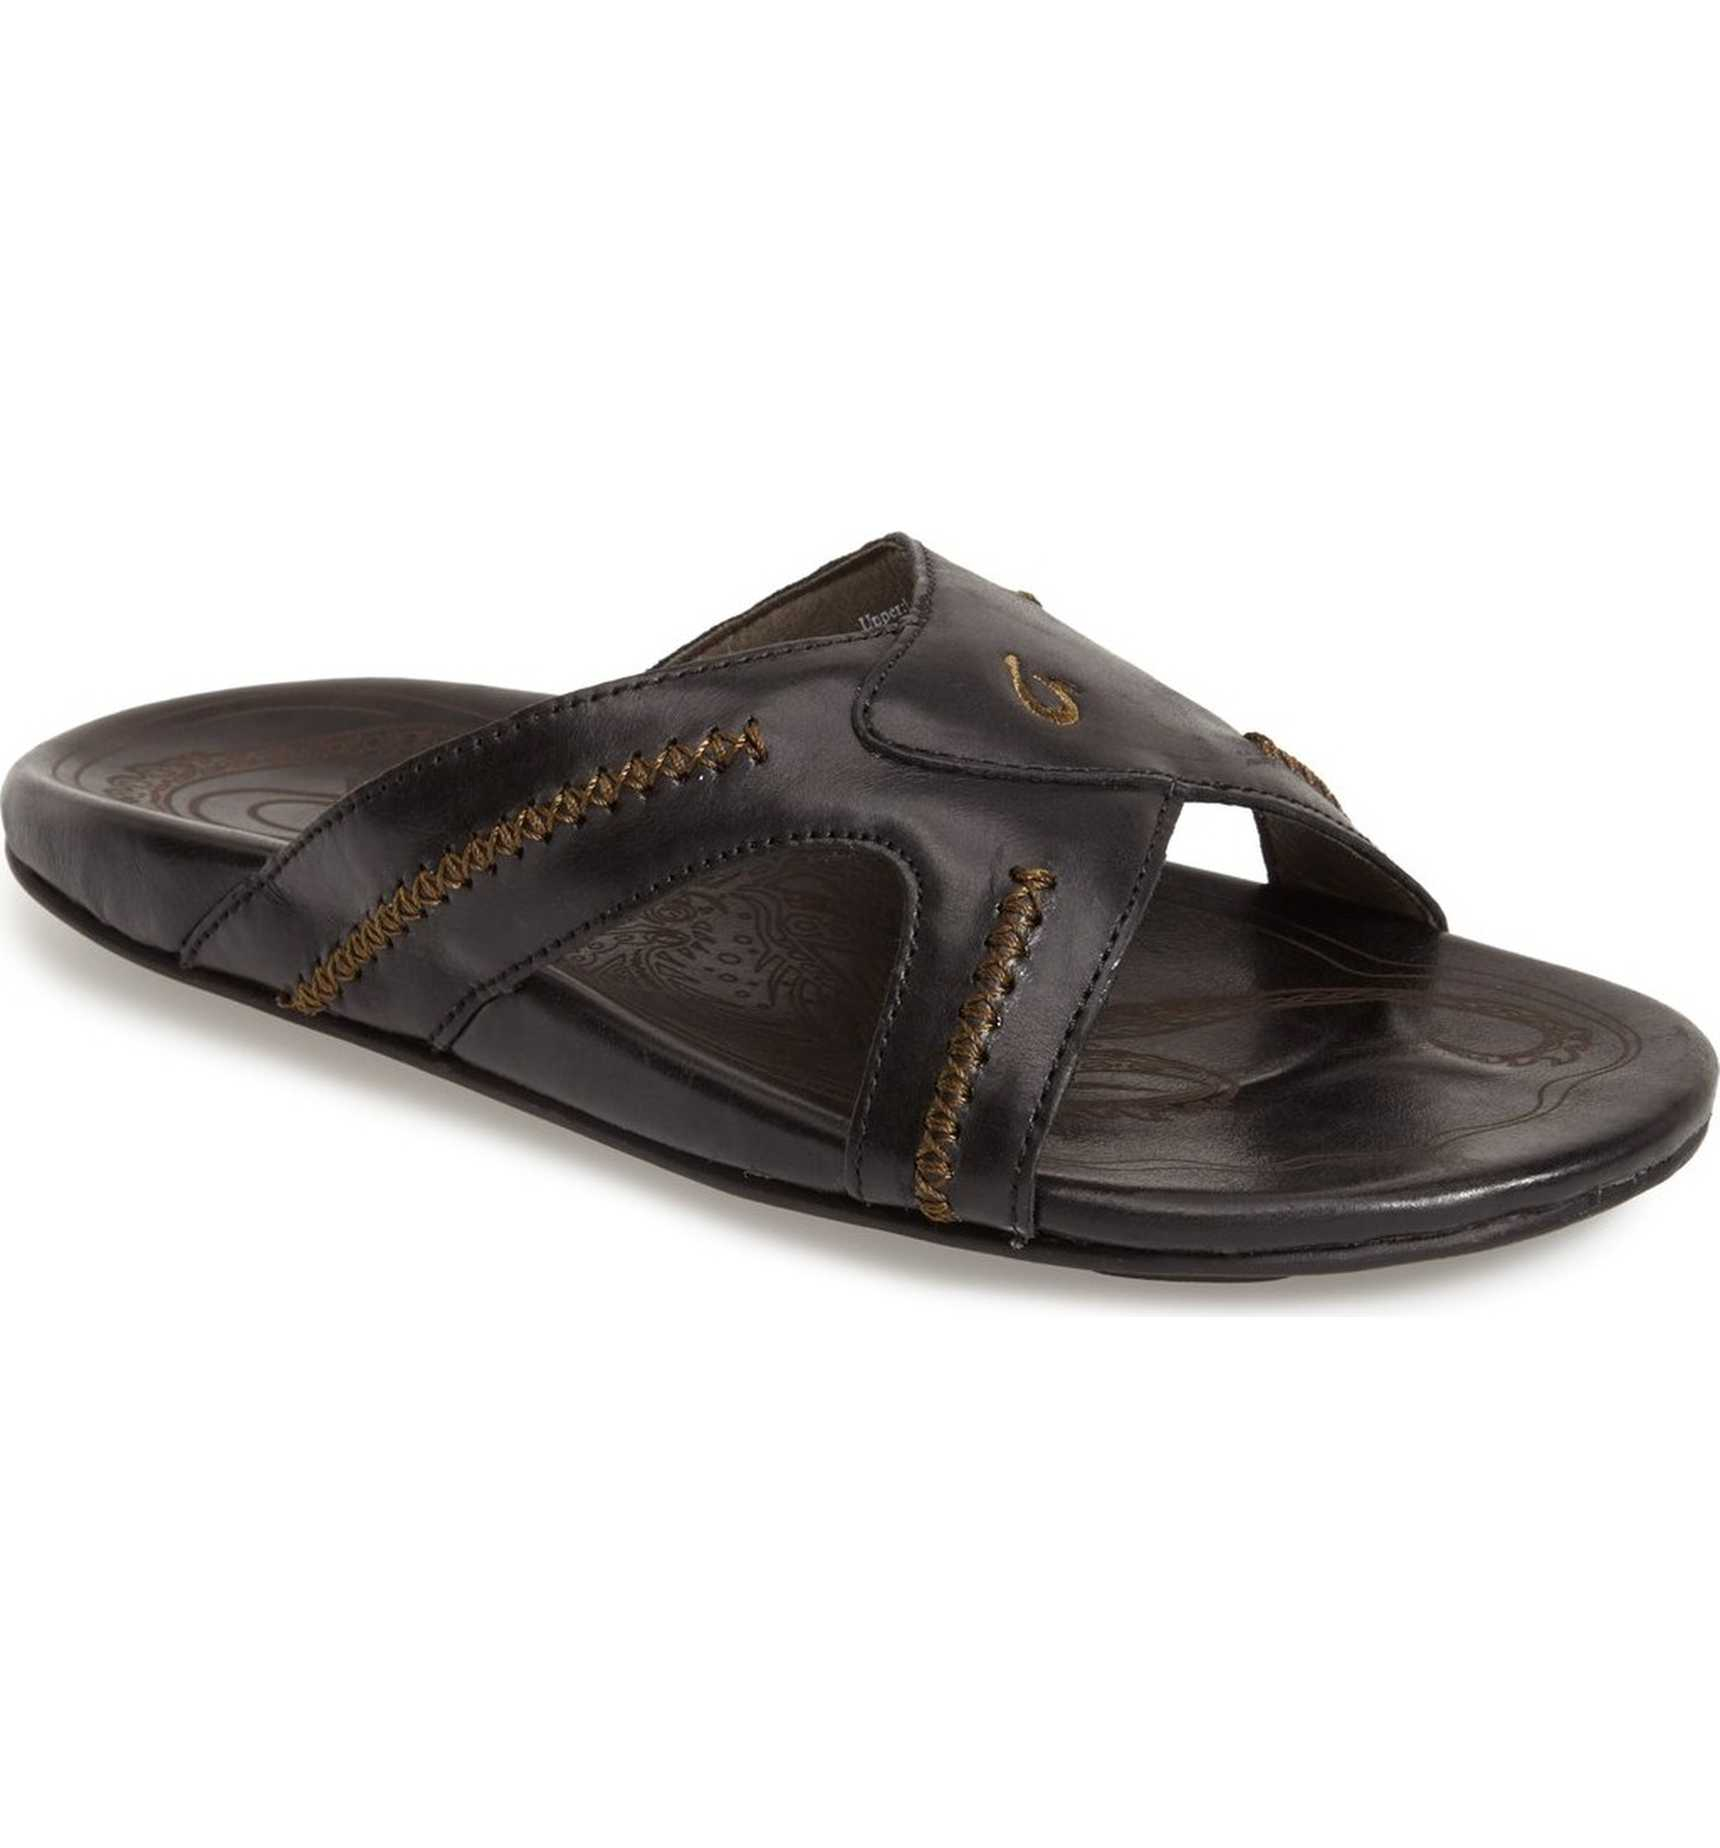 5ae21351542b Best Men s Sandals   Flip-Flops For Summer